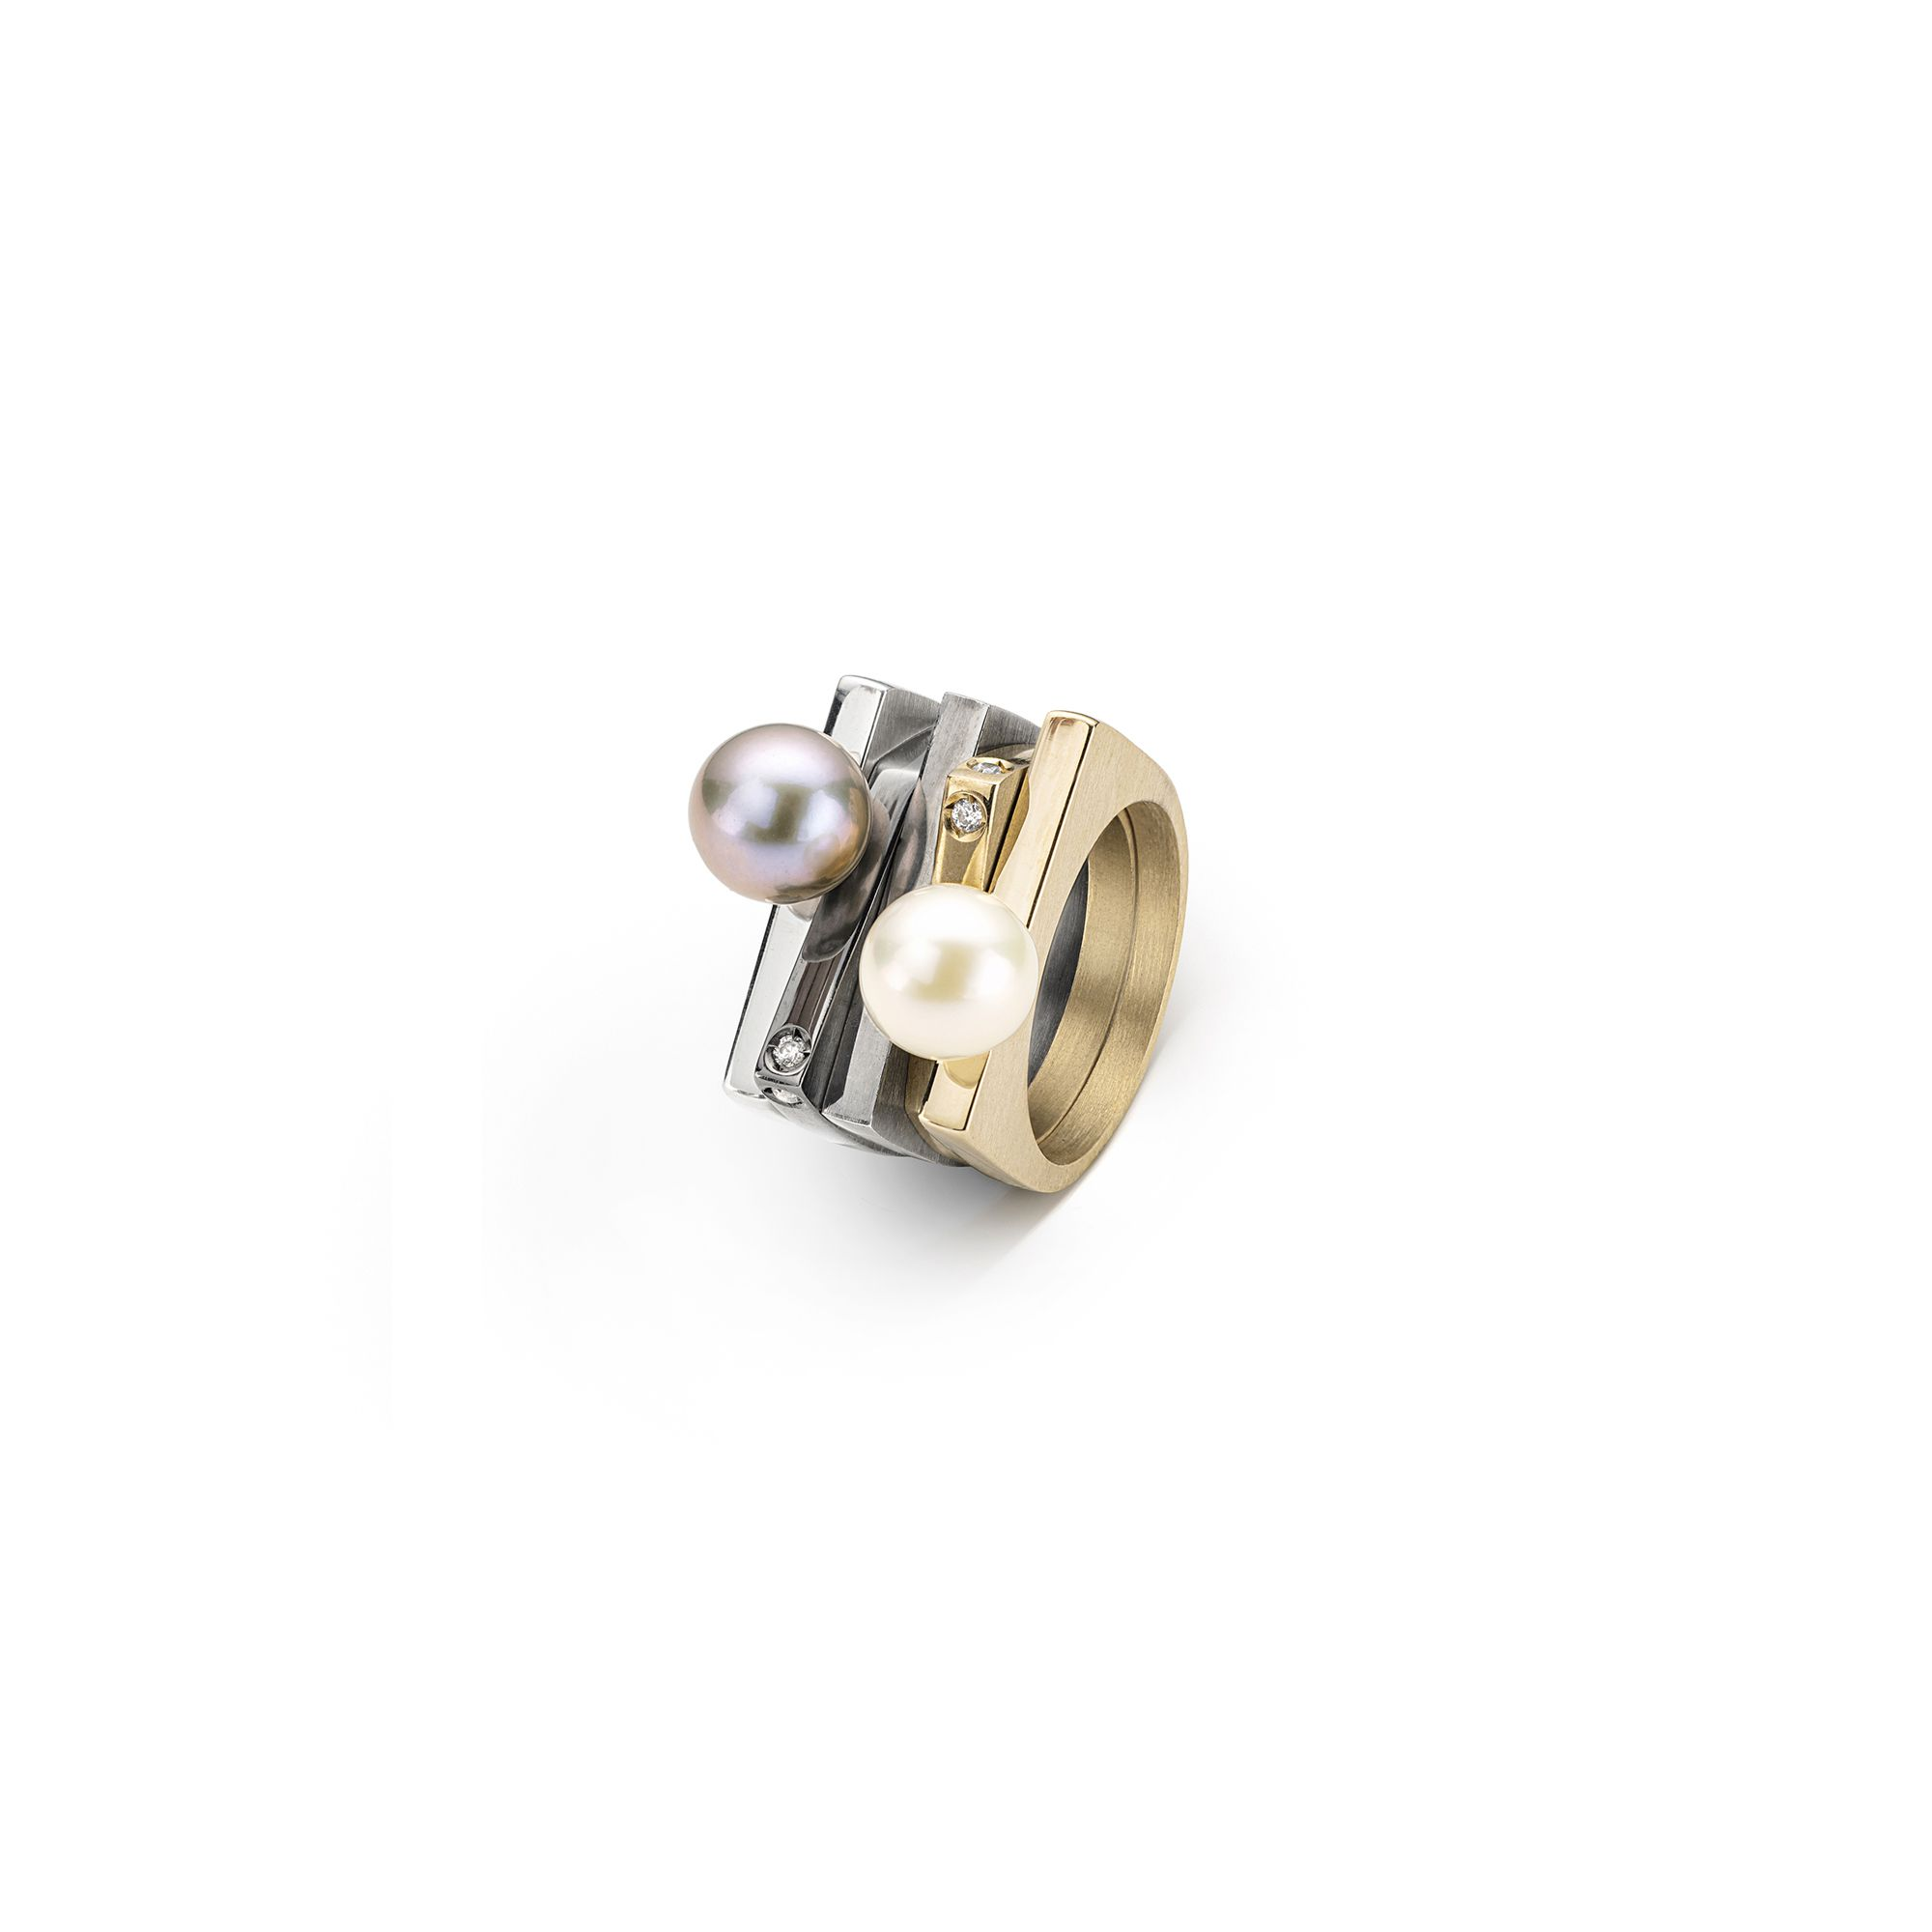 Stackable 'Congiunzioni' rings with pearls Silver and bronze rings with pearls and stones